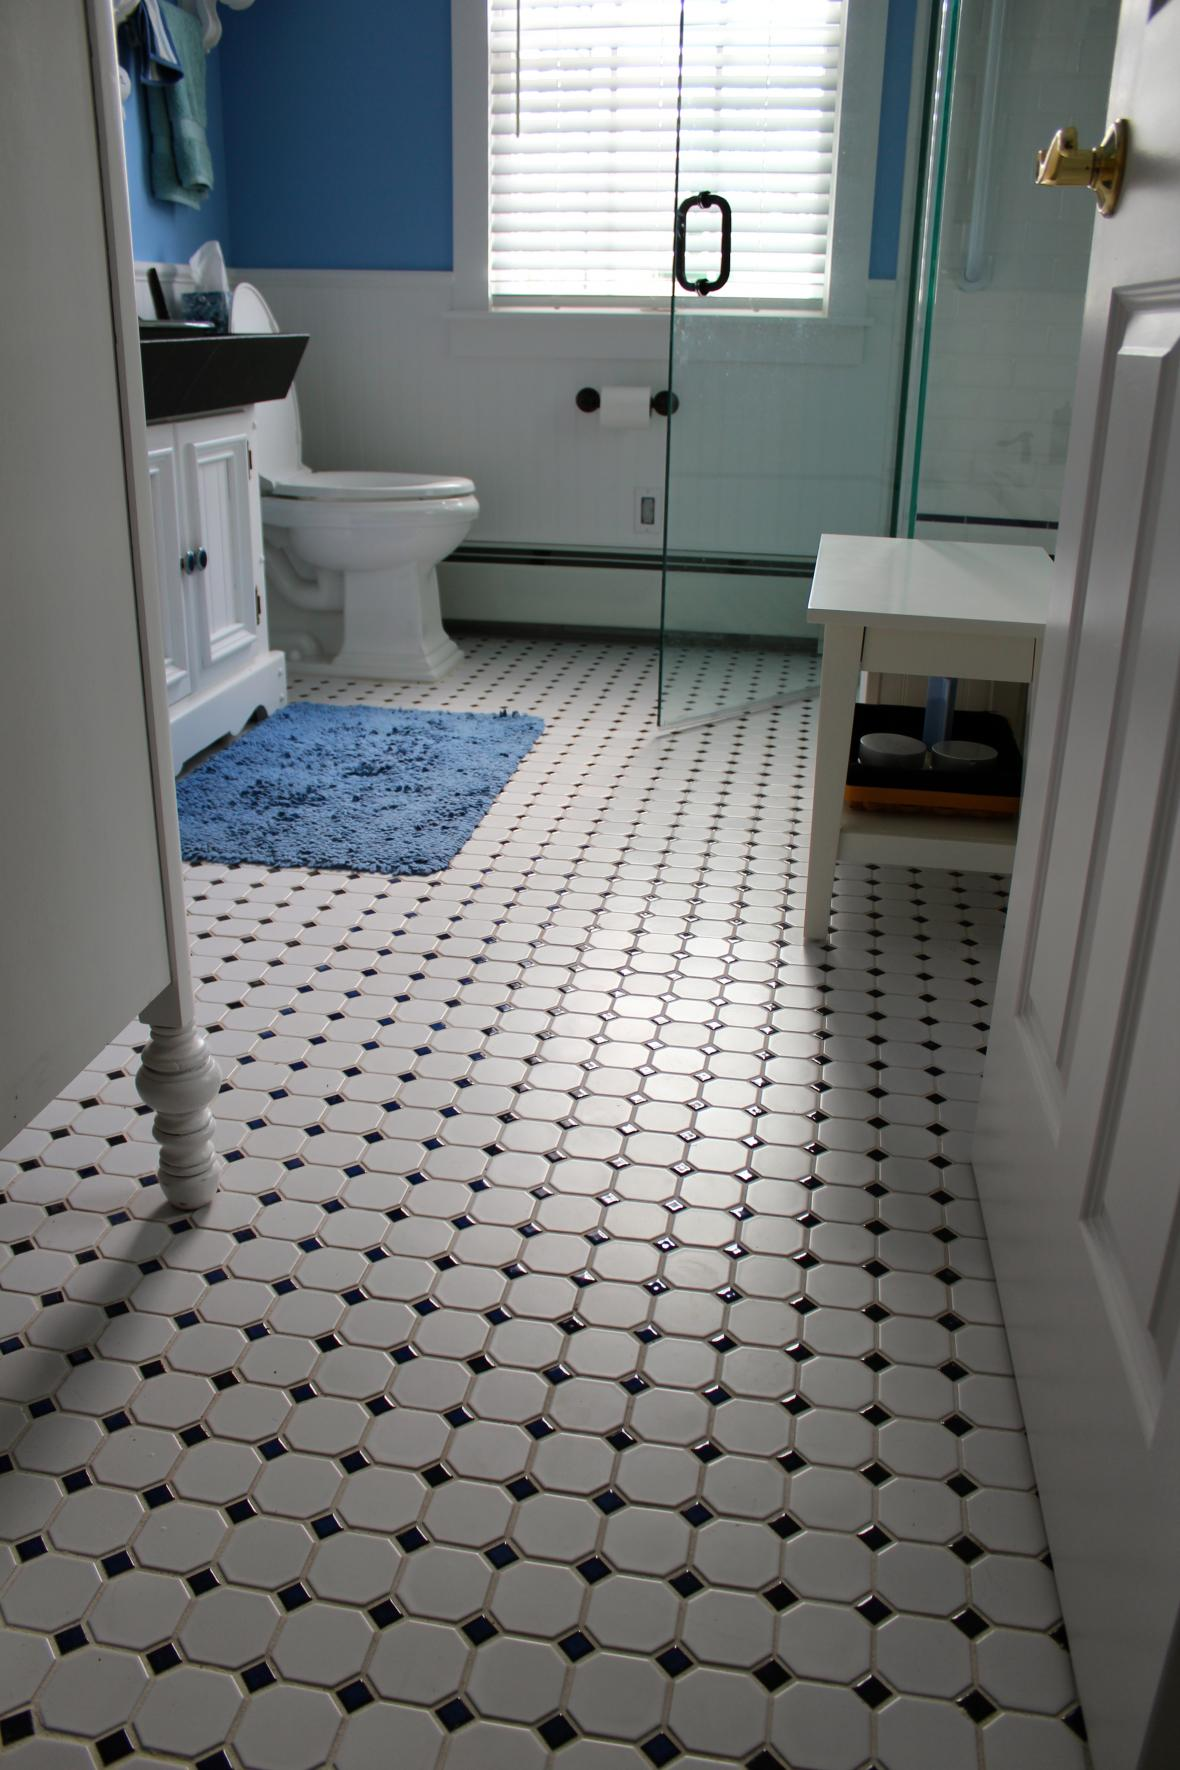 Bathroom floor ceramic tile patterns 2017 2018 best Images of bathroom tile floors